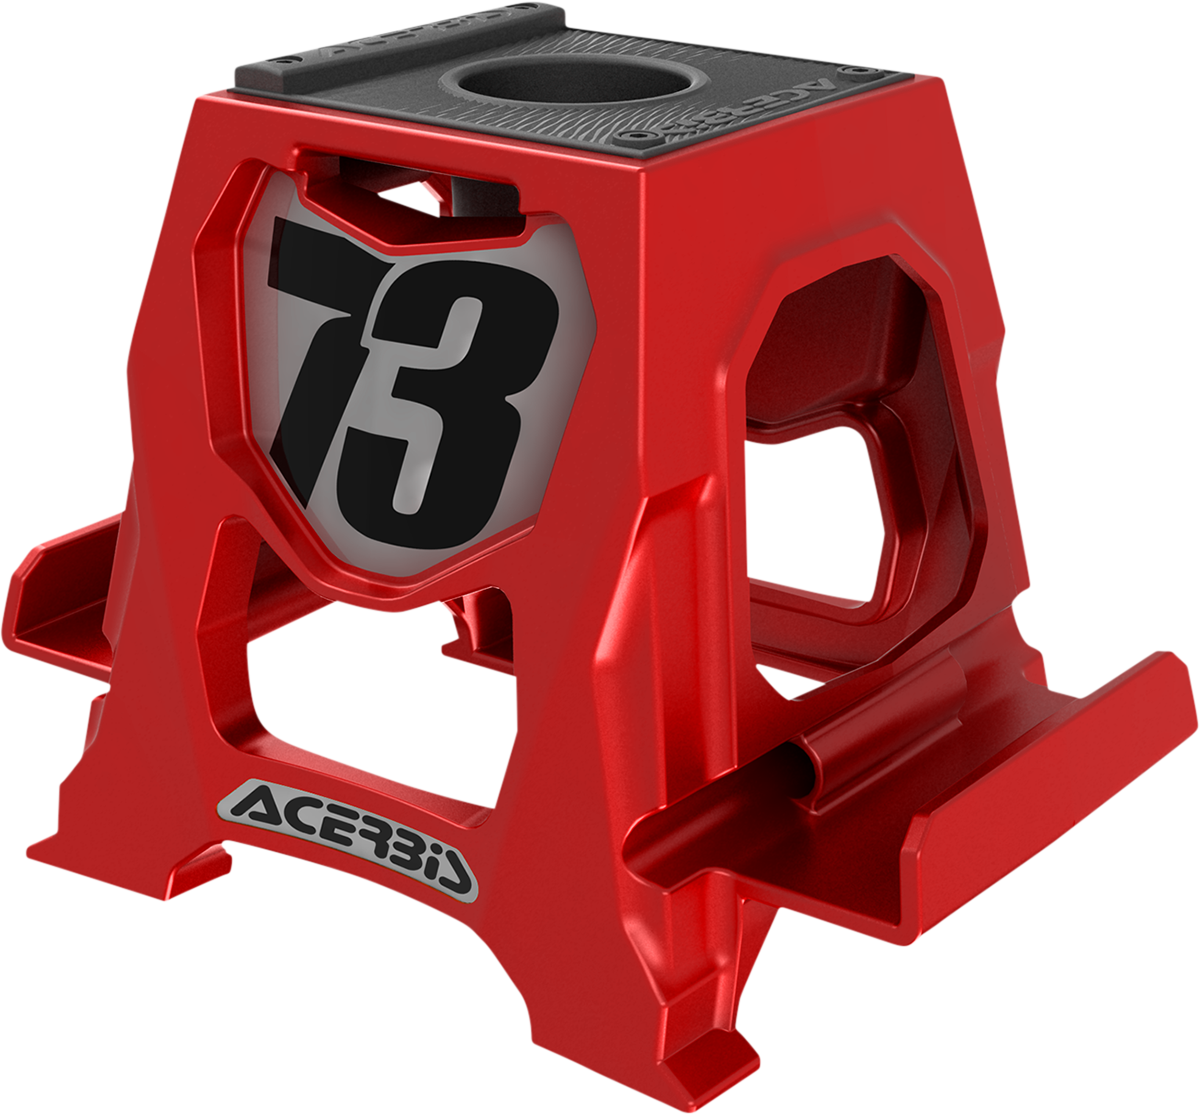 Acerbis Red Universal Cell Phone Table Dirbike Stand Holder